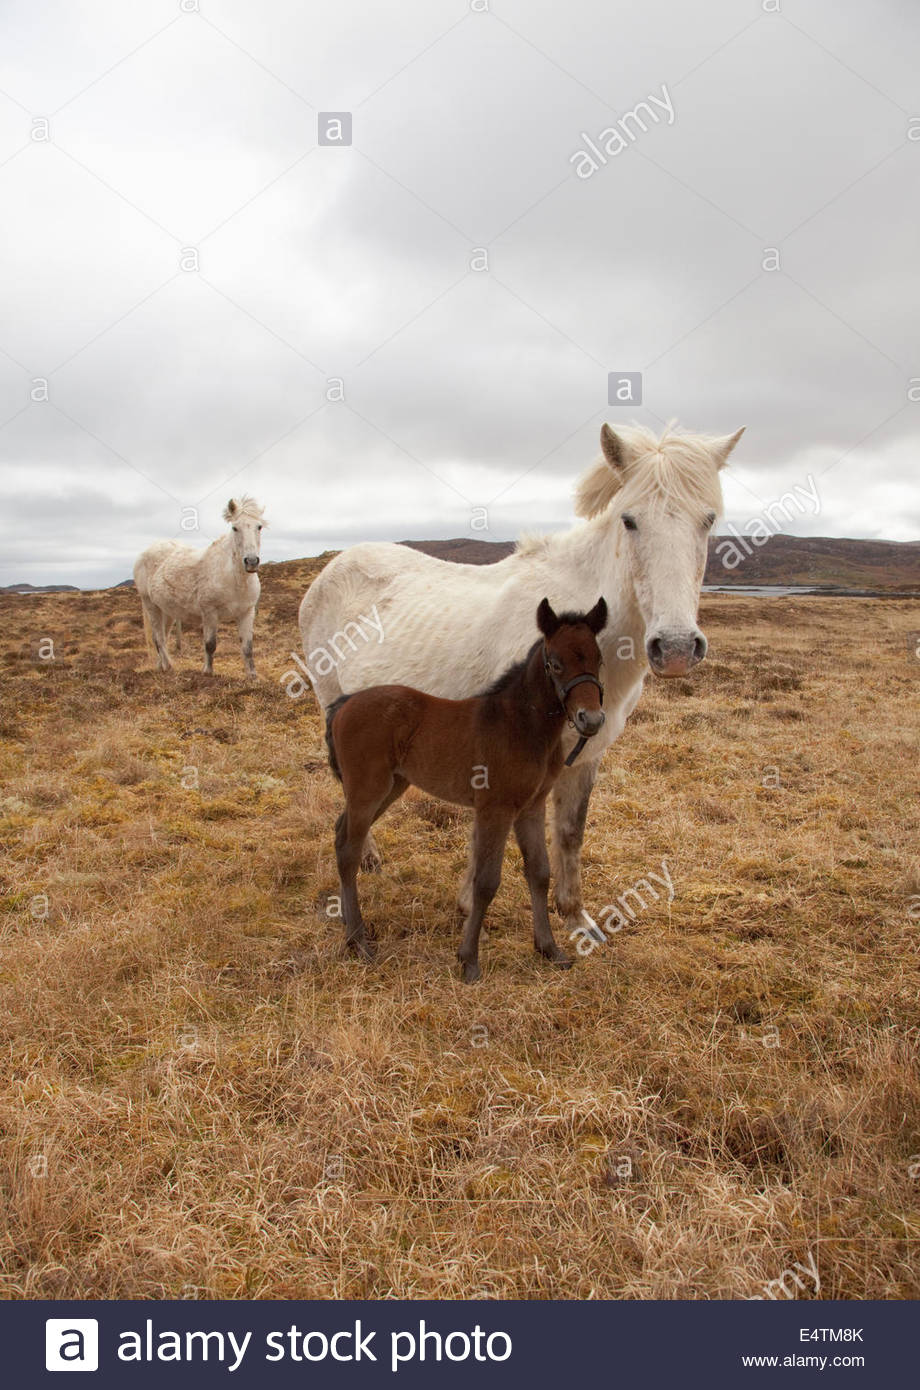 Eriskay Ponies grazing on moorland near Lochboisdale, South Uist, Outer Hebrides, Scotland. - Stock Image